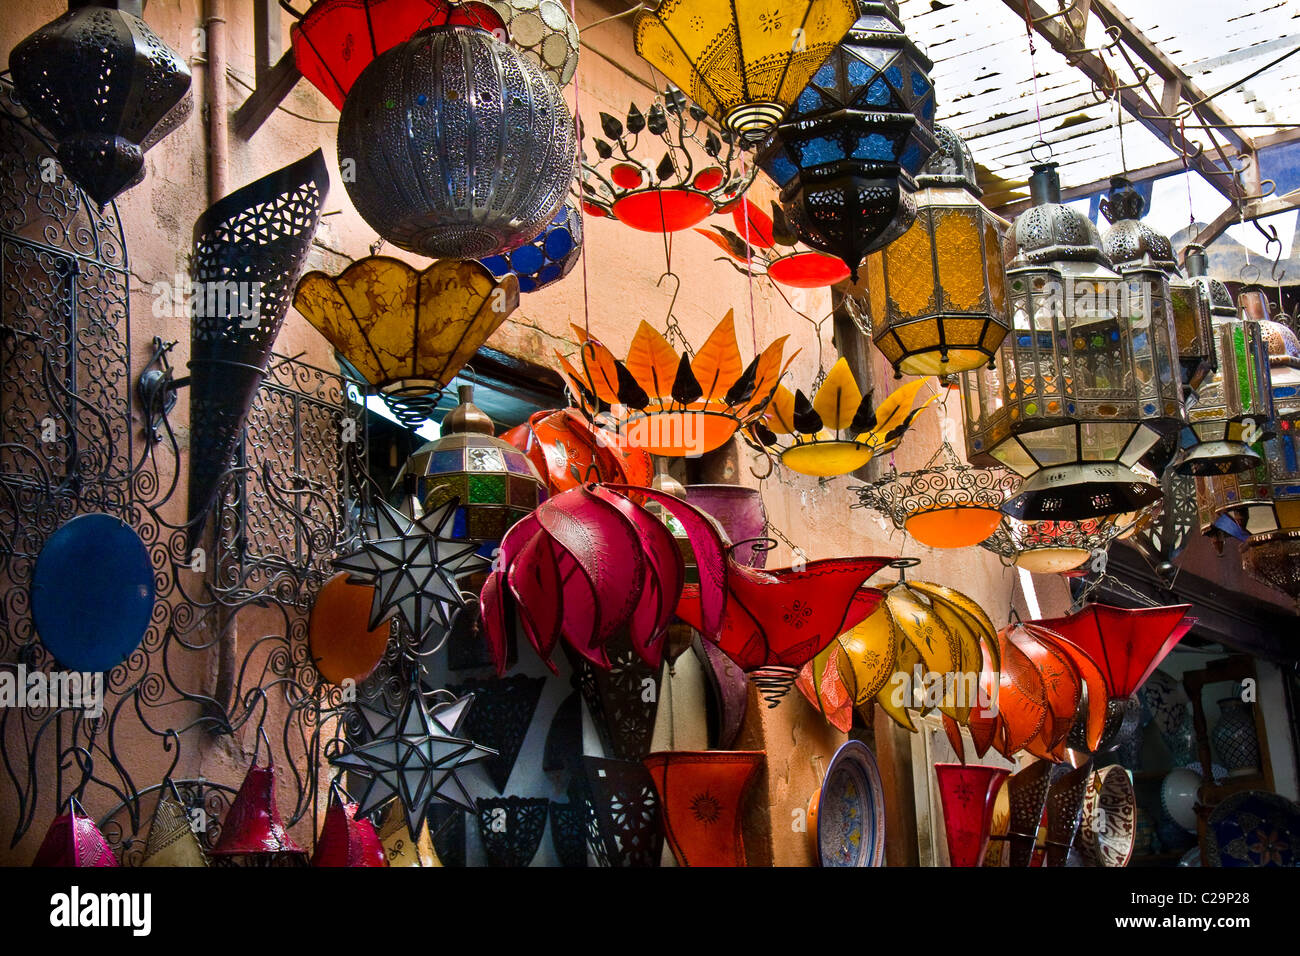 Lamps outside a shop in the souk in Marrakech, Morocco, North Africa Stock Photo